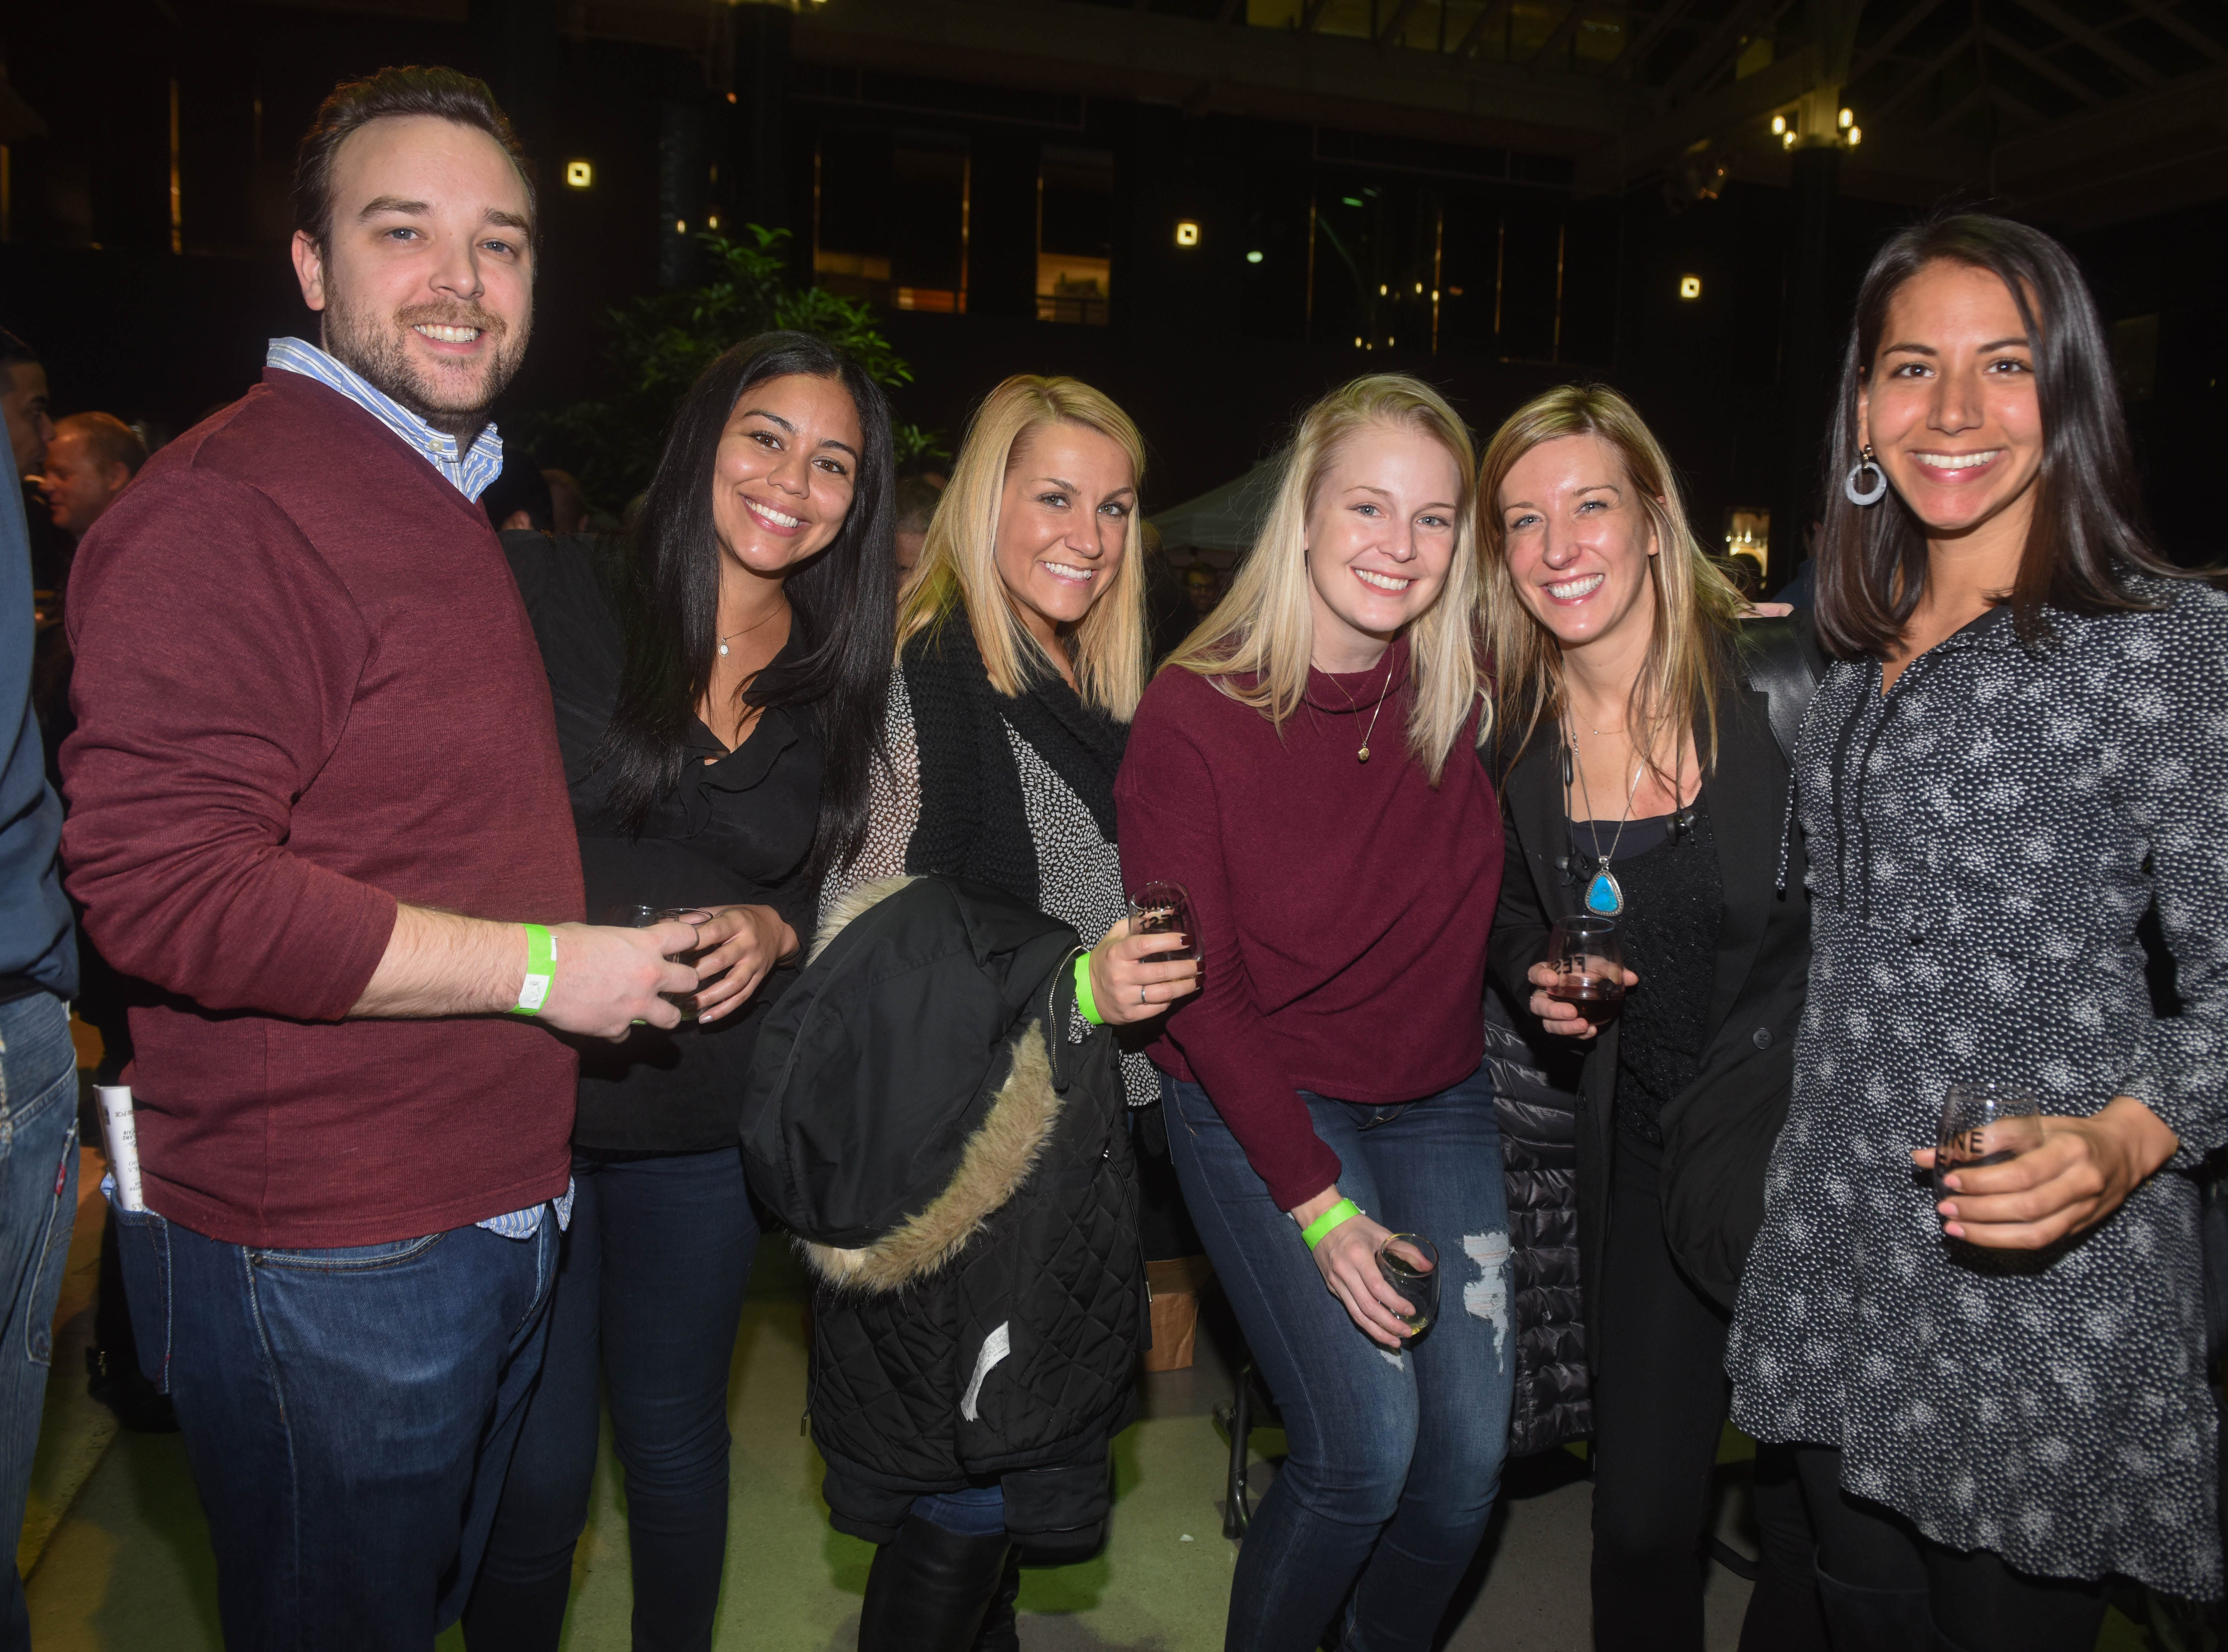 Sean, Laura, Gwen, Erin, Amanda and Lauren. Jersey City Whiskey Fest was held at Harborside Atrium. The event featured over 100 styles of whiskey and spirits. 02/01/2019